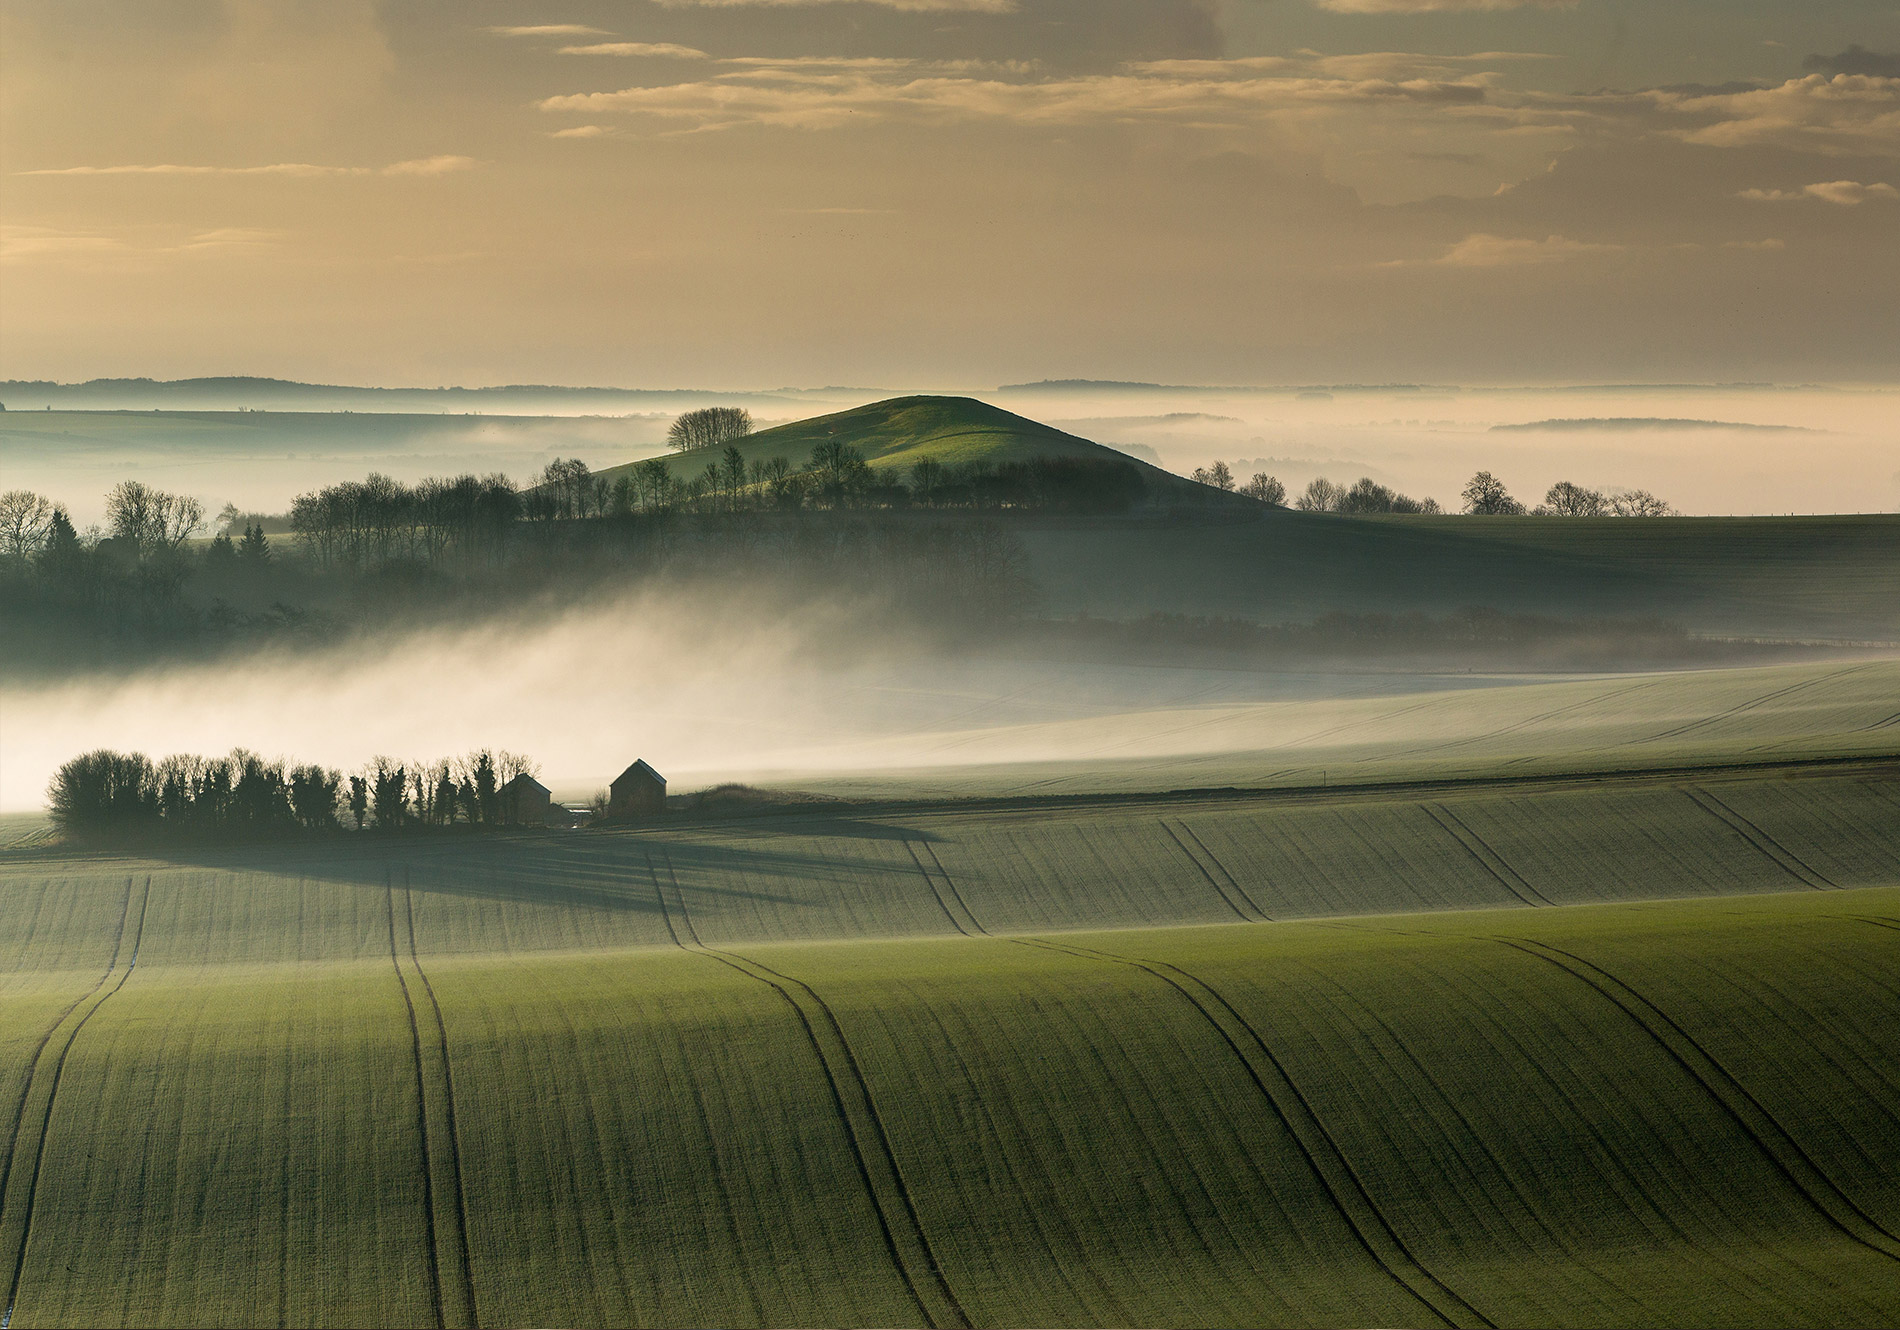 A landscape view of the Wiltshire countryside